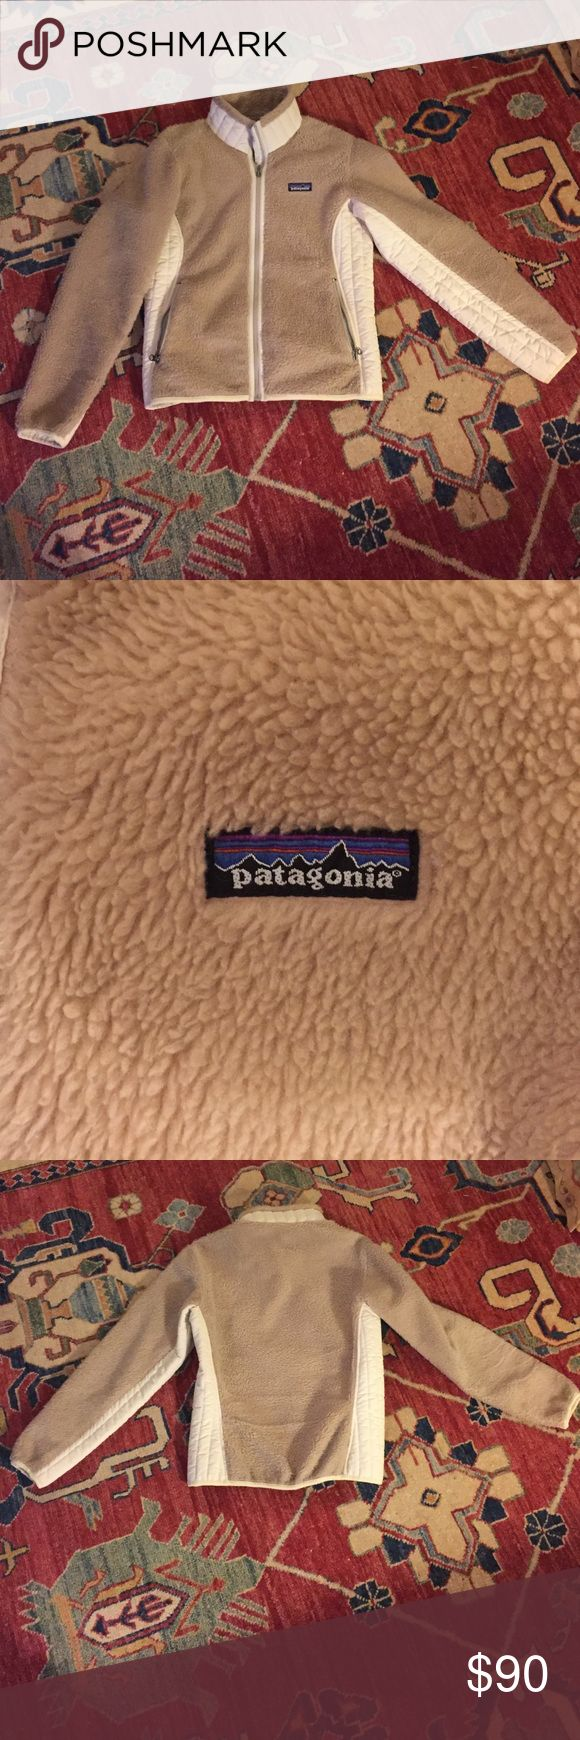 Patagonia synchilla jacket Great beige and cream Patagonia synchilla jacket. Used but in great condition. Women's Small. Patagonia Jackets & Coats